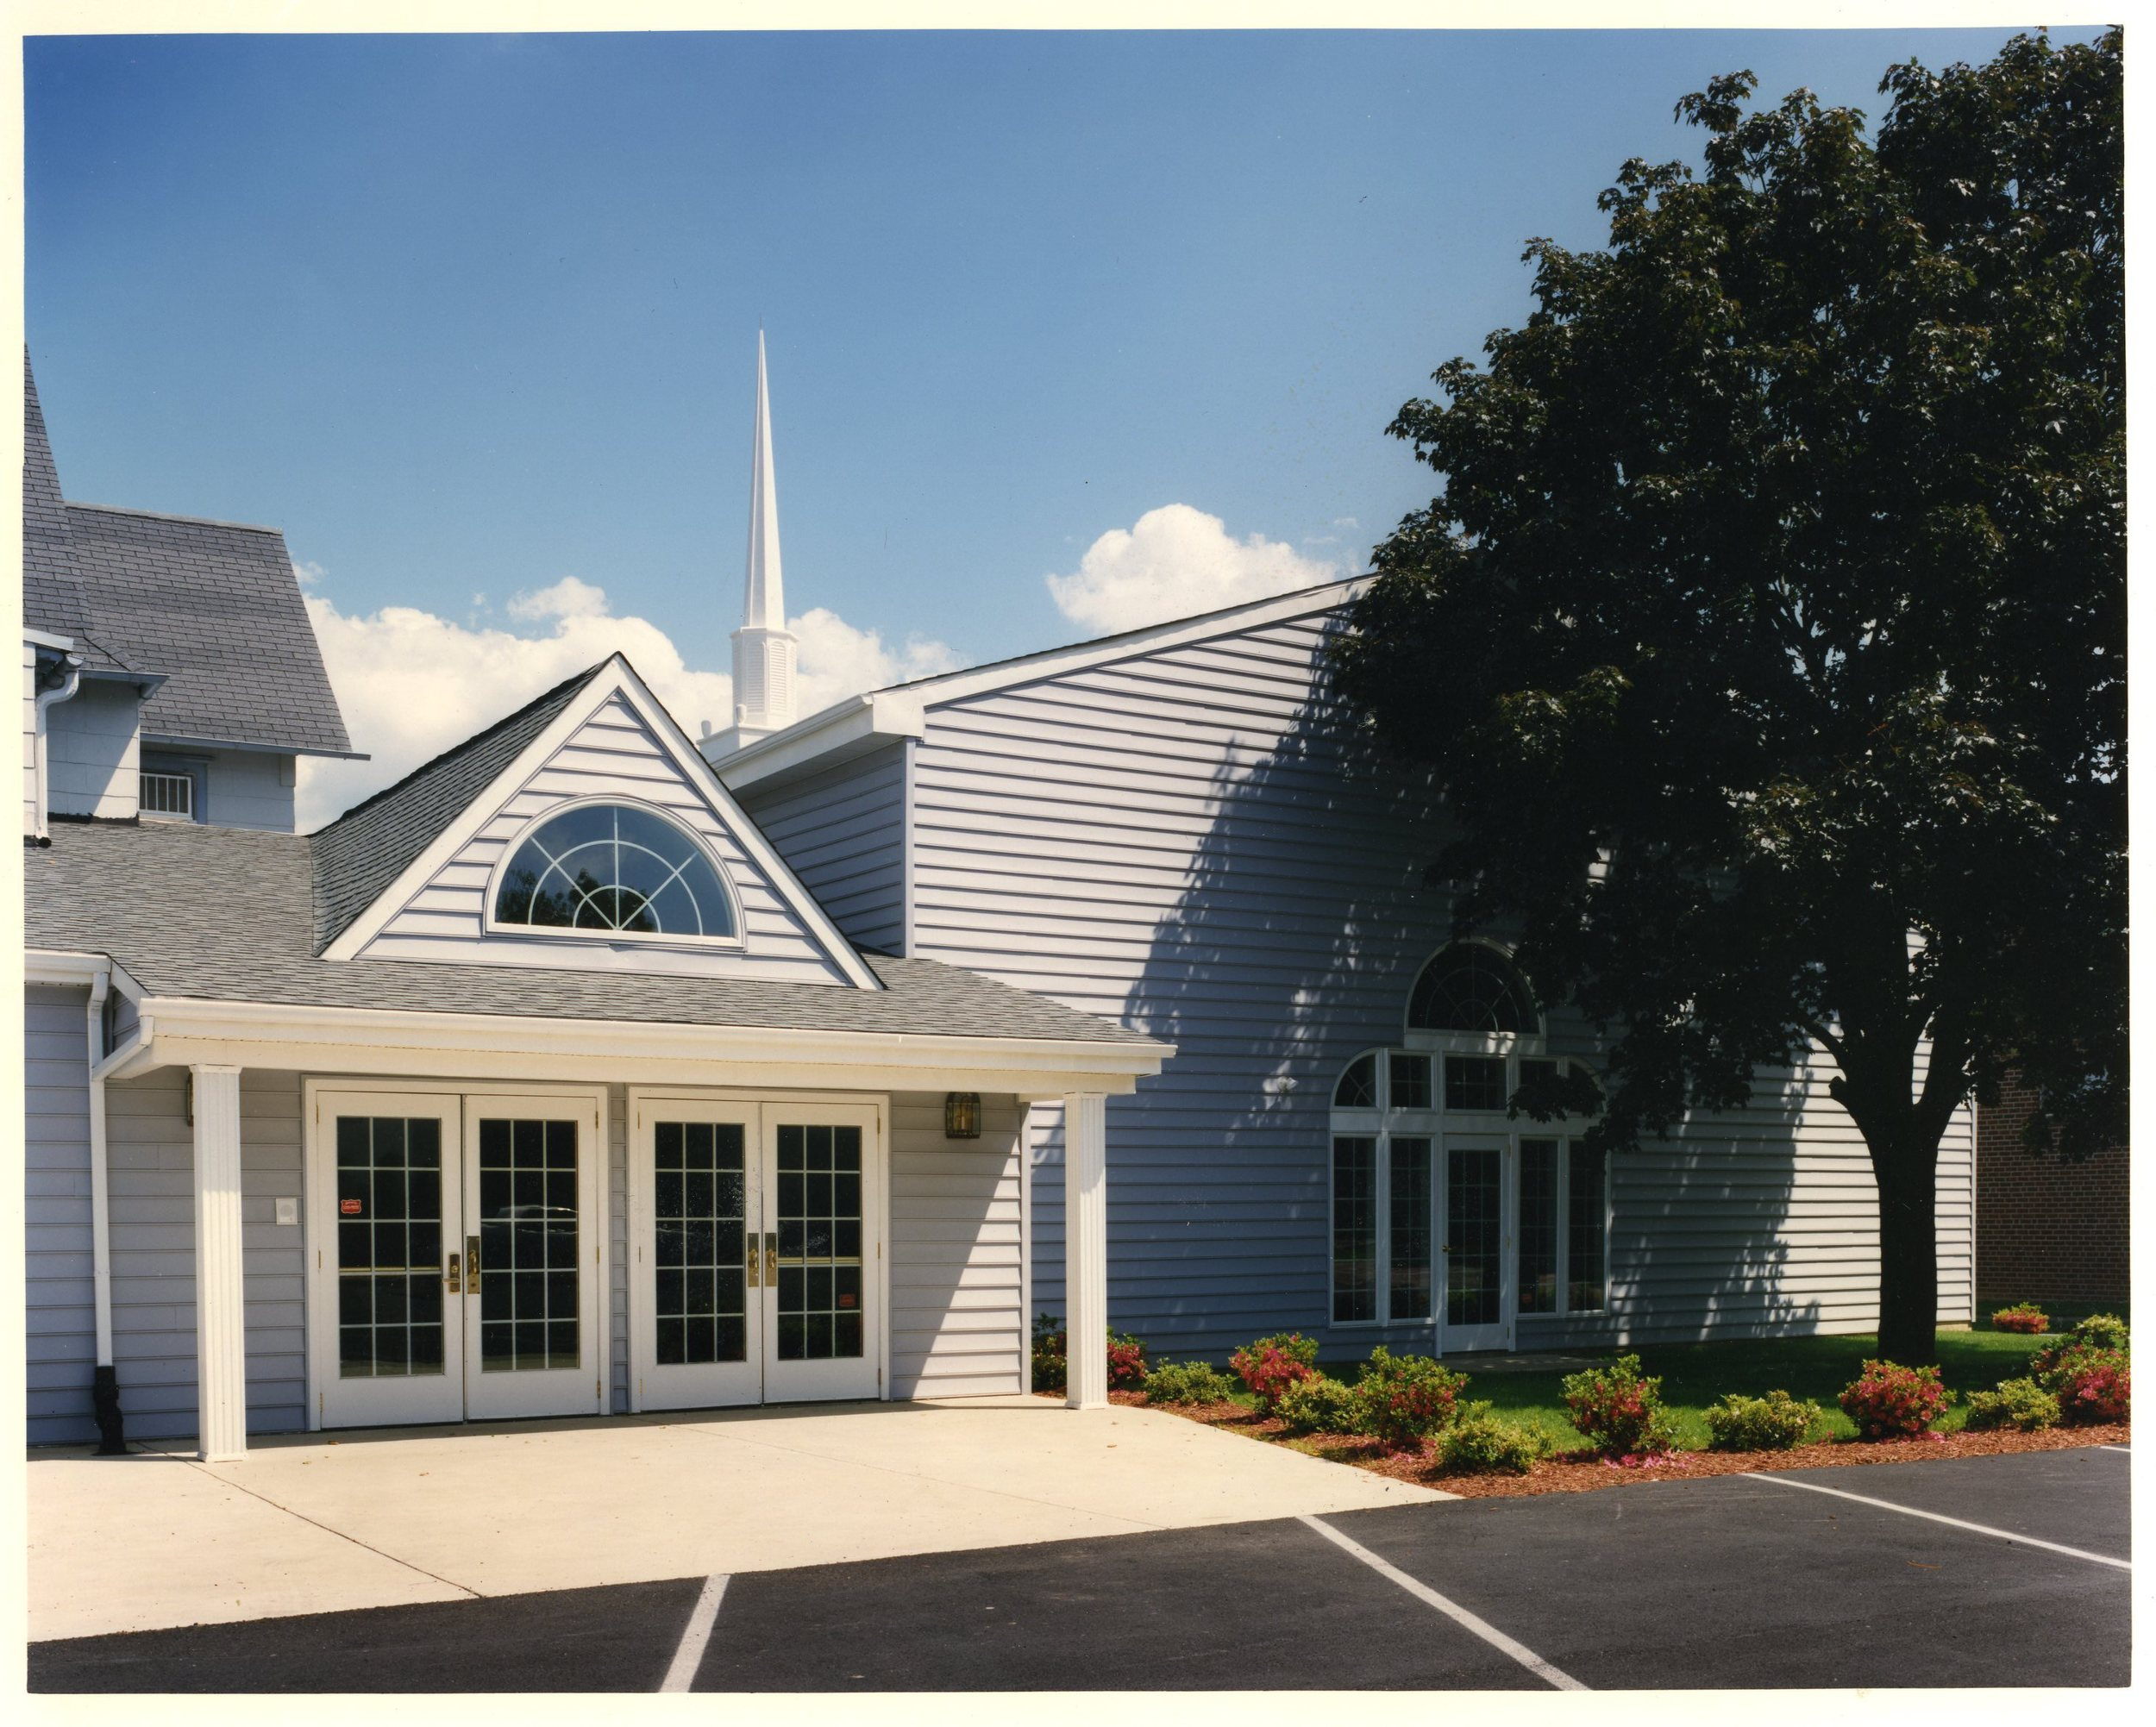 Bethel fellowship's first 'home' - a converted funeral home with a small addition